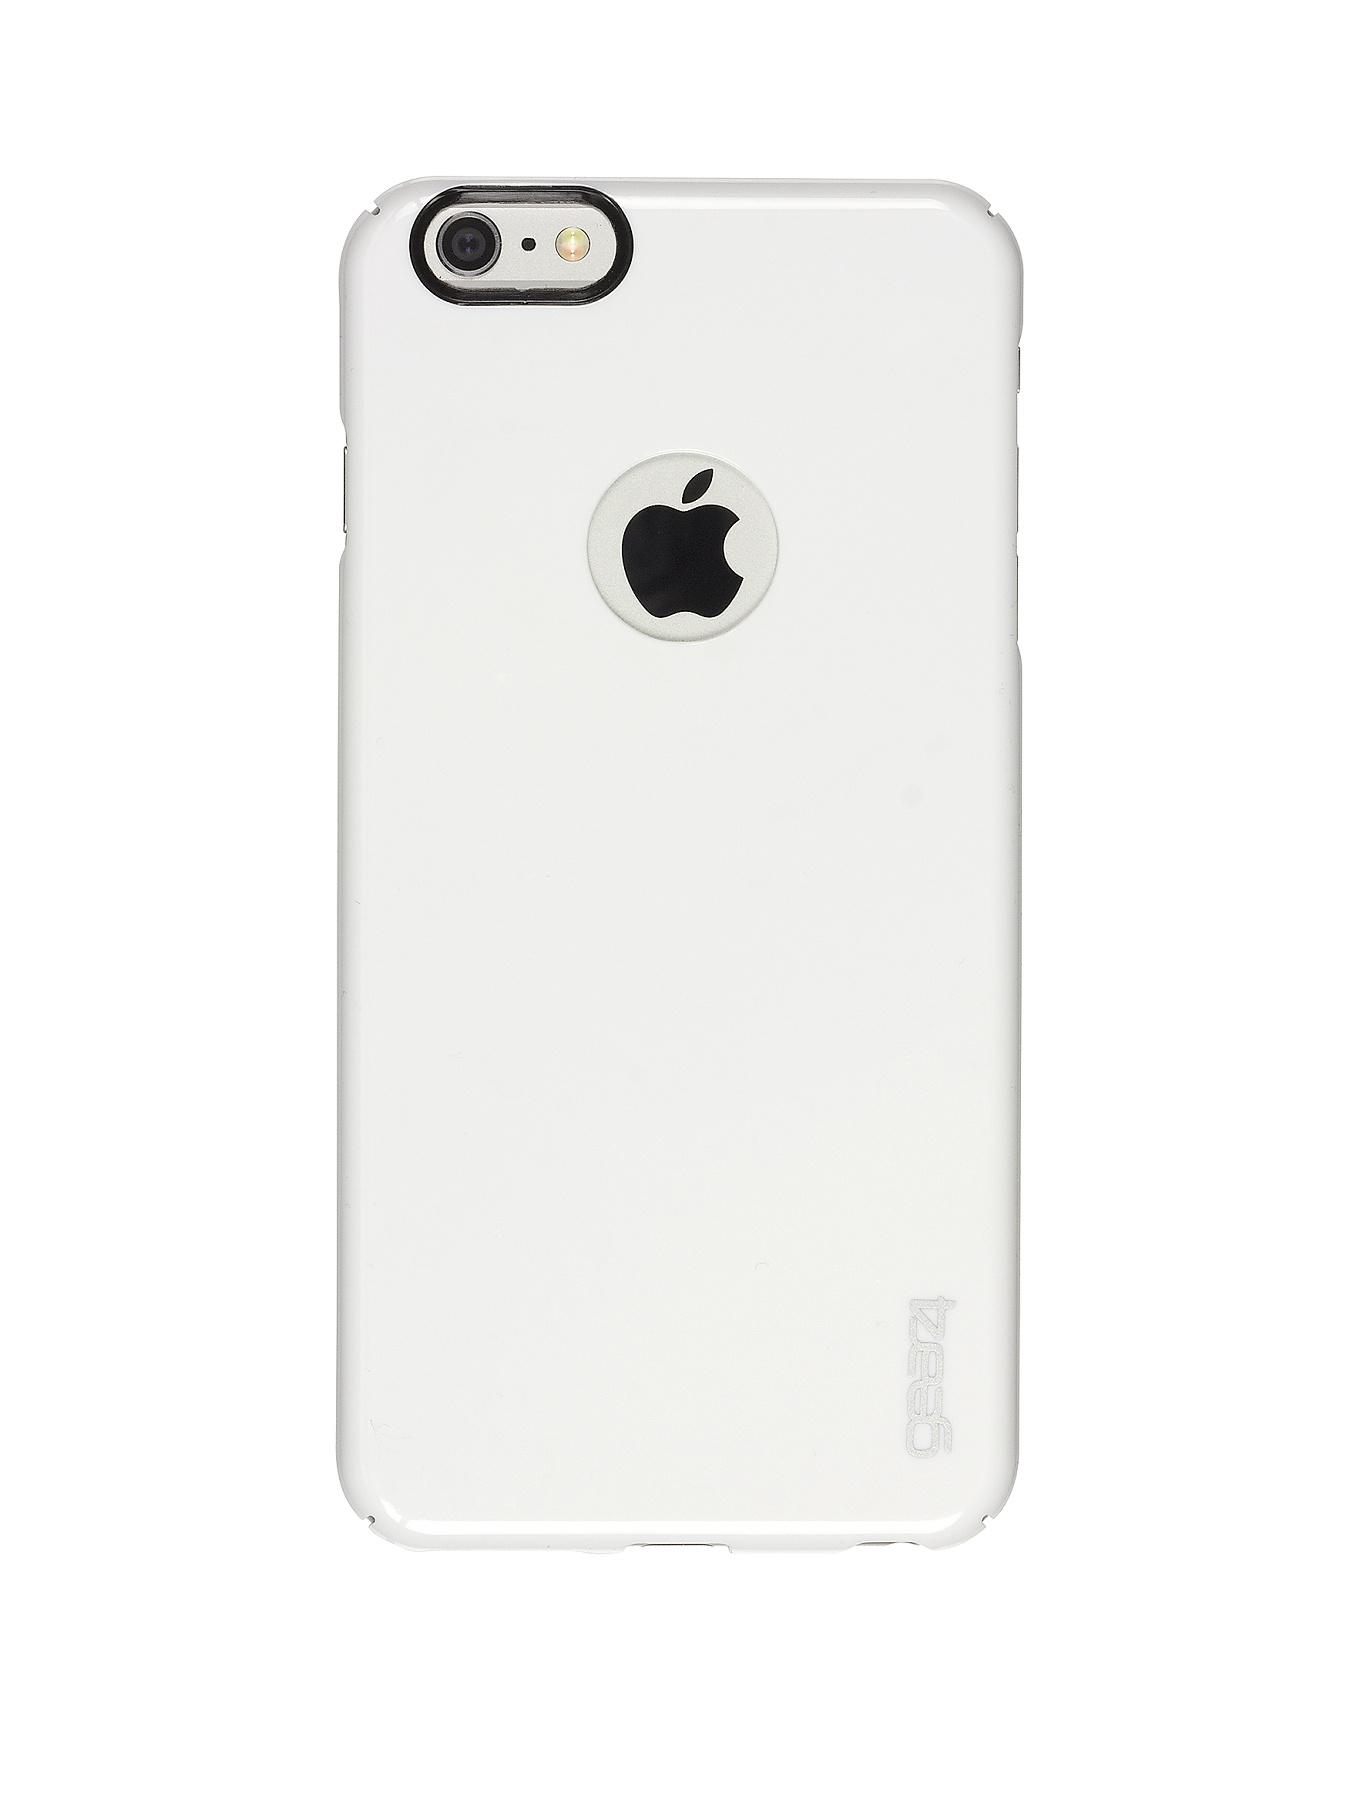 GEAR 4 iPhone 6 Plus Thin Ice Case with Black Camera Ring Case - White, White